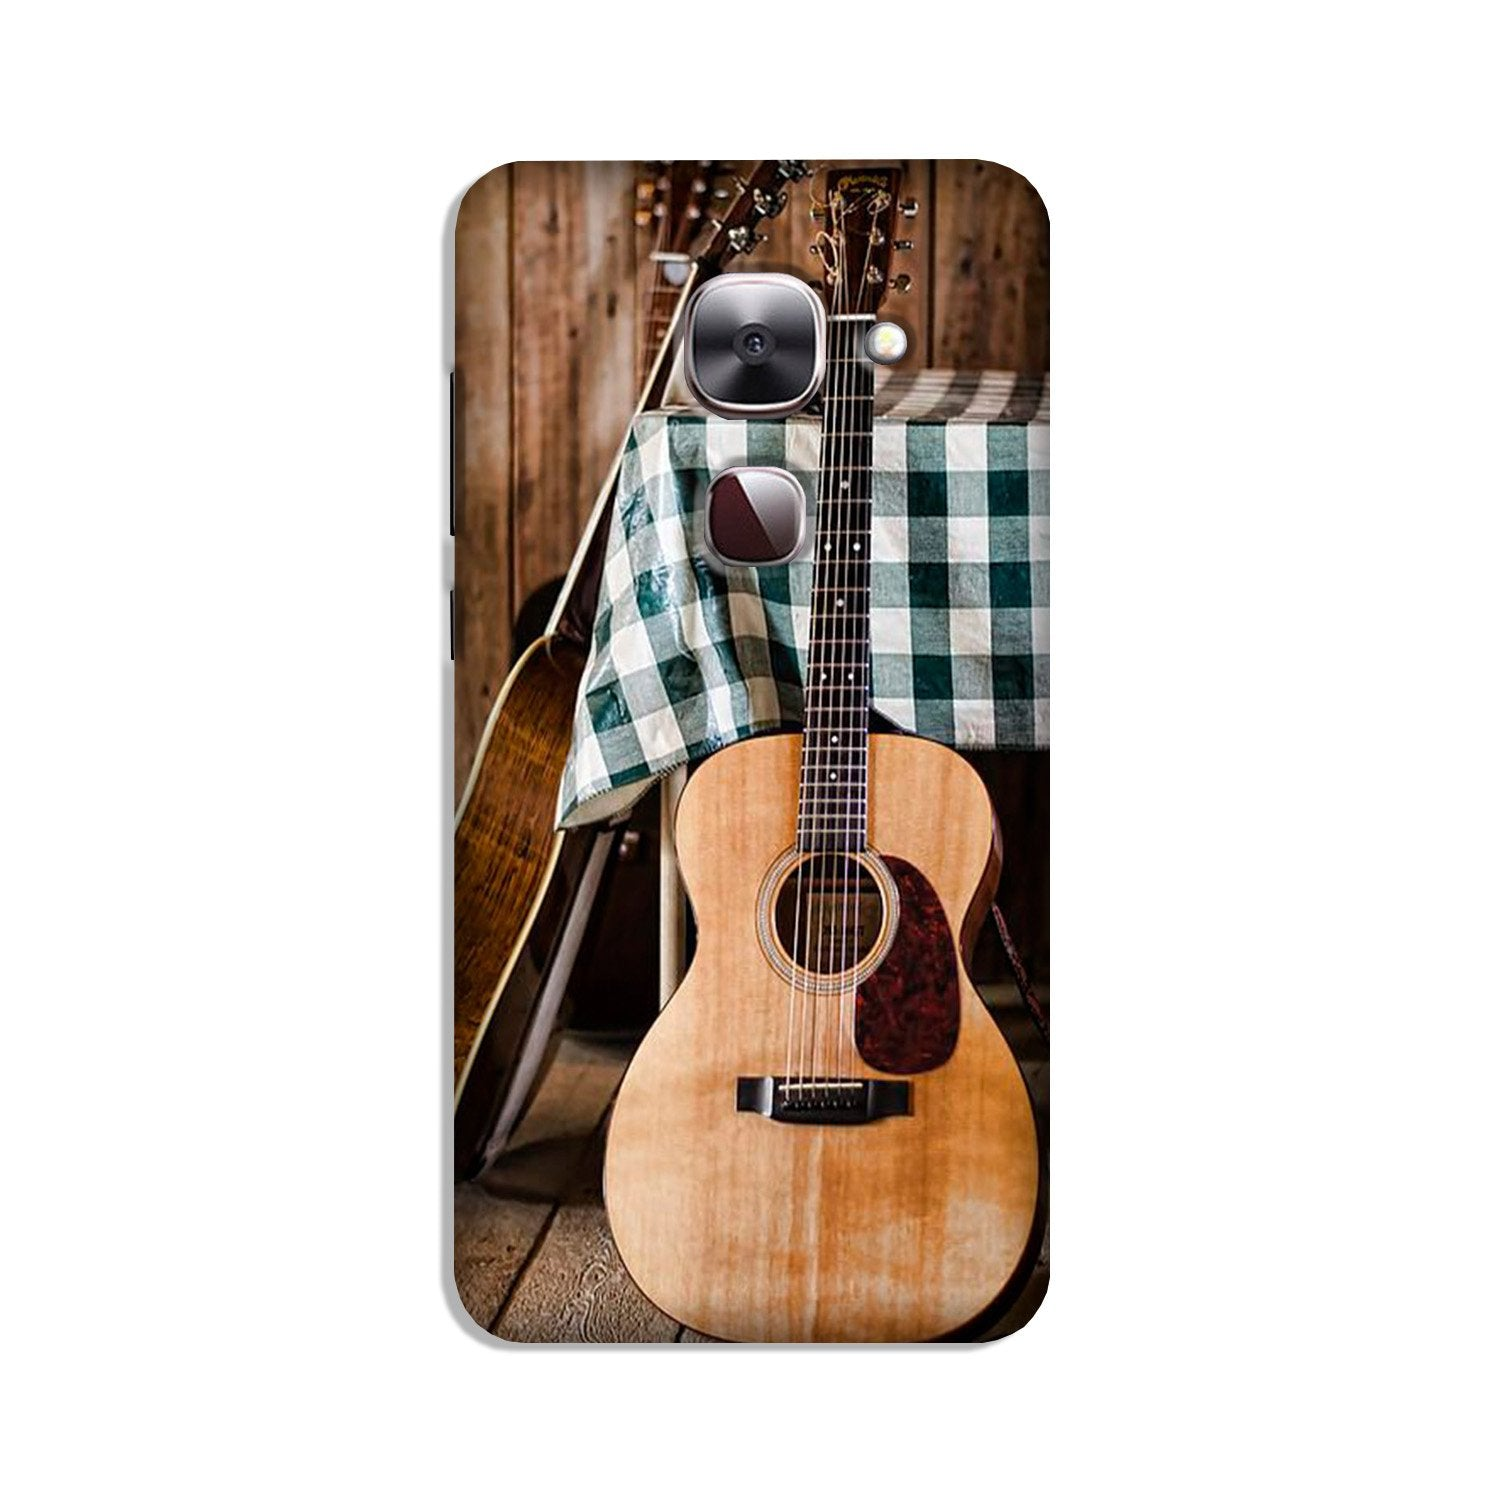 Guitar Case for LeEco le 2s